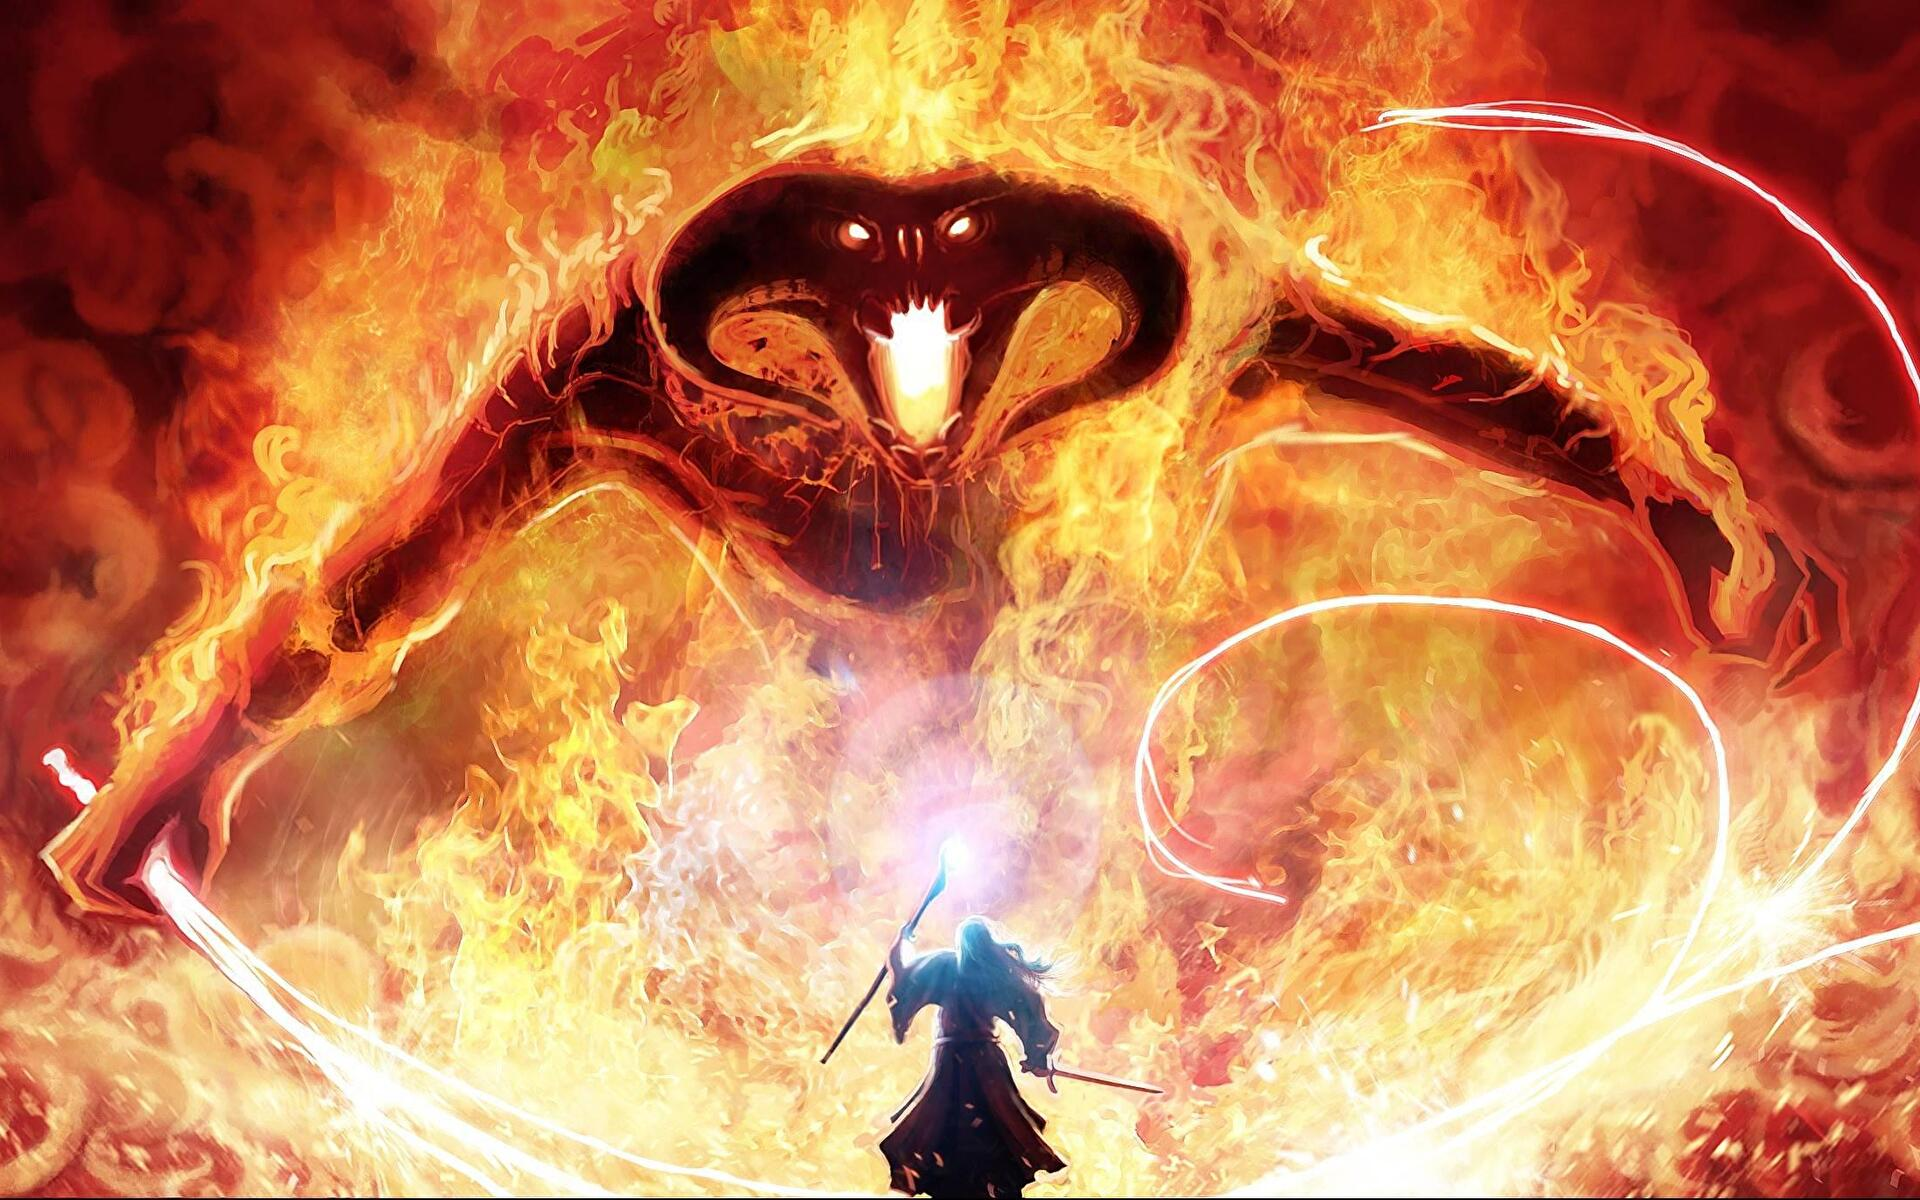 Gandalf Vs Balrog - HD Wallpaper